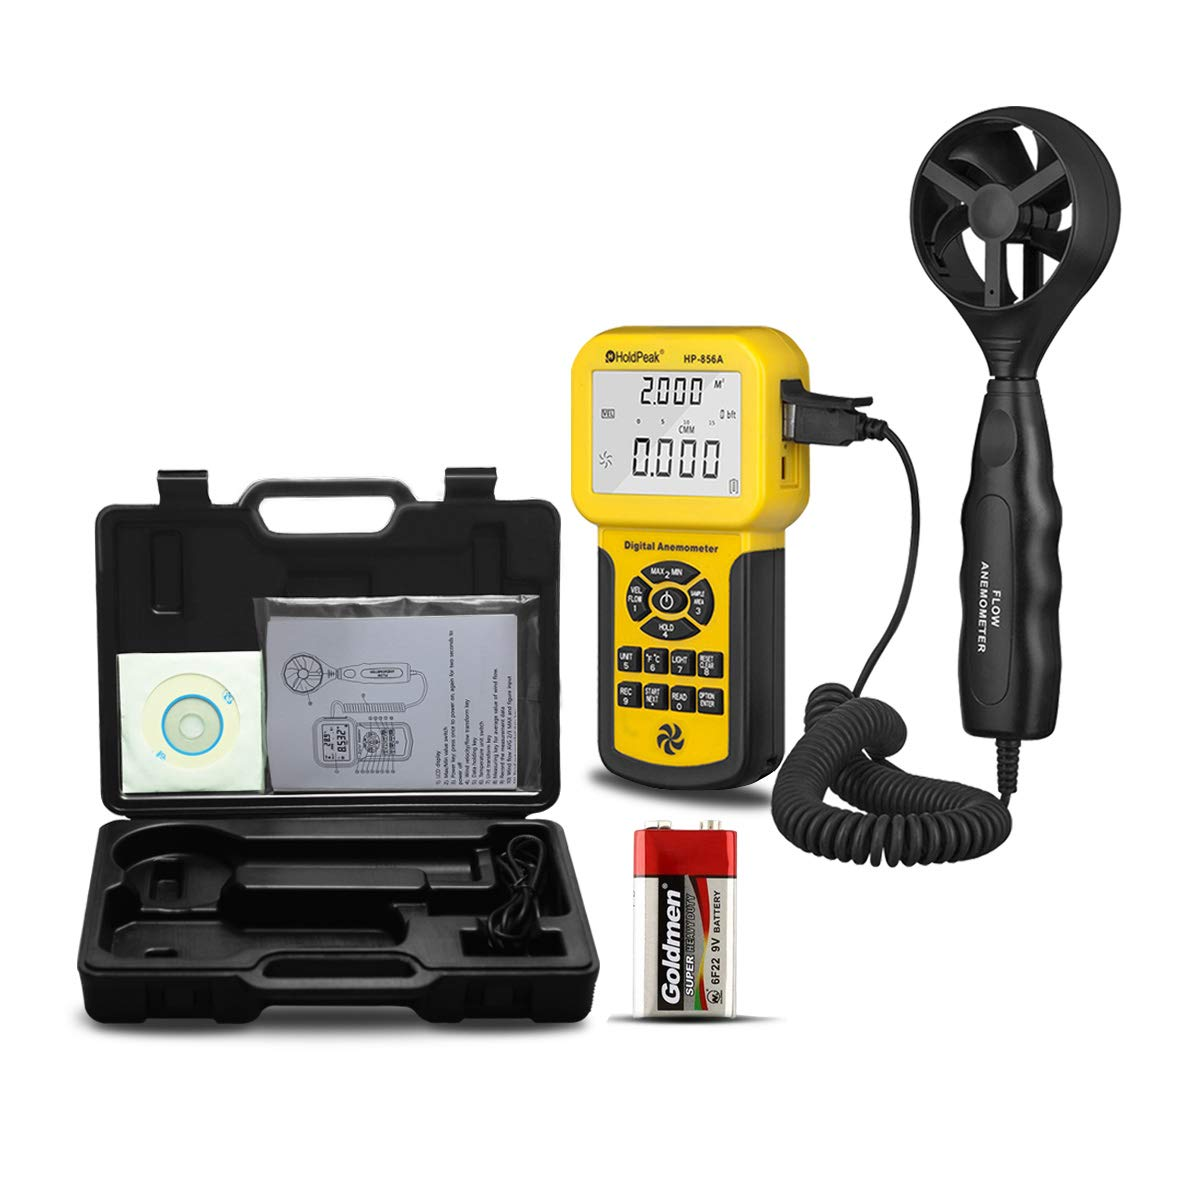 HOLDPEAK HP-856A Pro Anemometer Handheld CFM Meter for HVAC,Air Flow Area Setting,Air Velocity,Temperature,Wind Speed Meter with Back Light,Data Hold and USB Connect to Your Computer by H HOLDPEAK